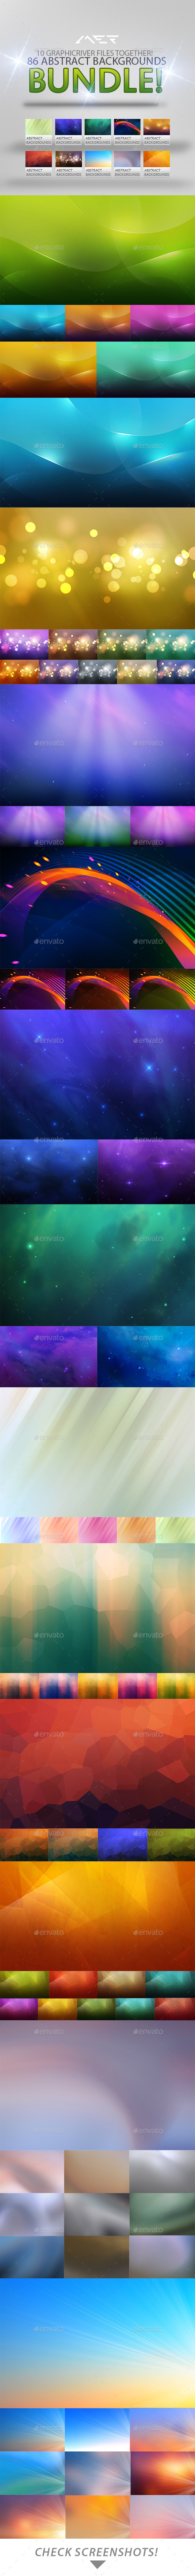 GraphicRiver 86 Abstract Backgrounds Bundle 9619105